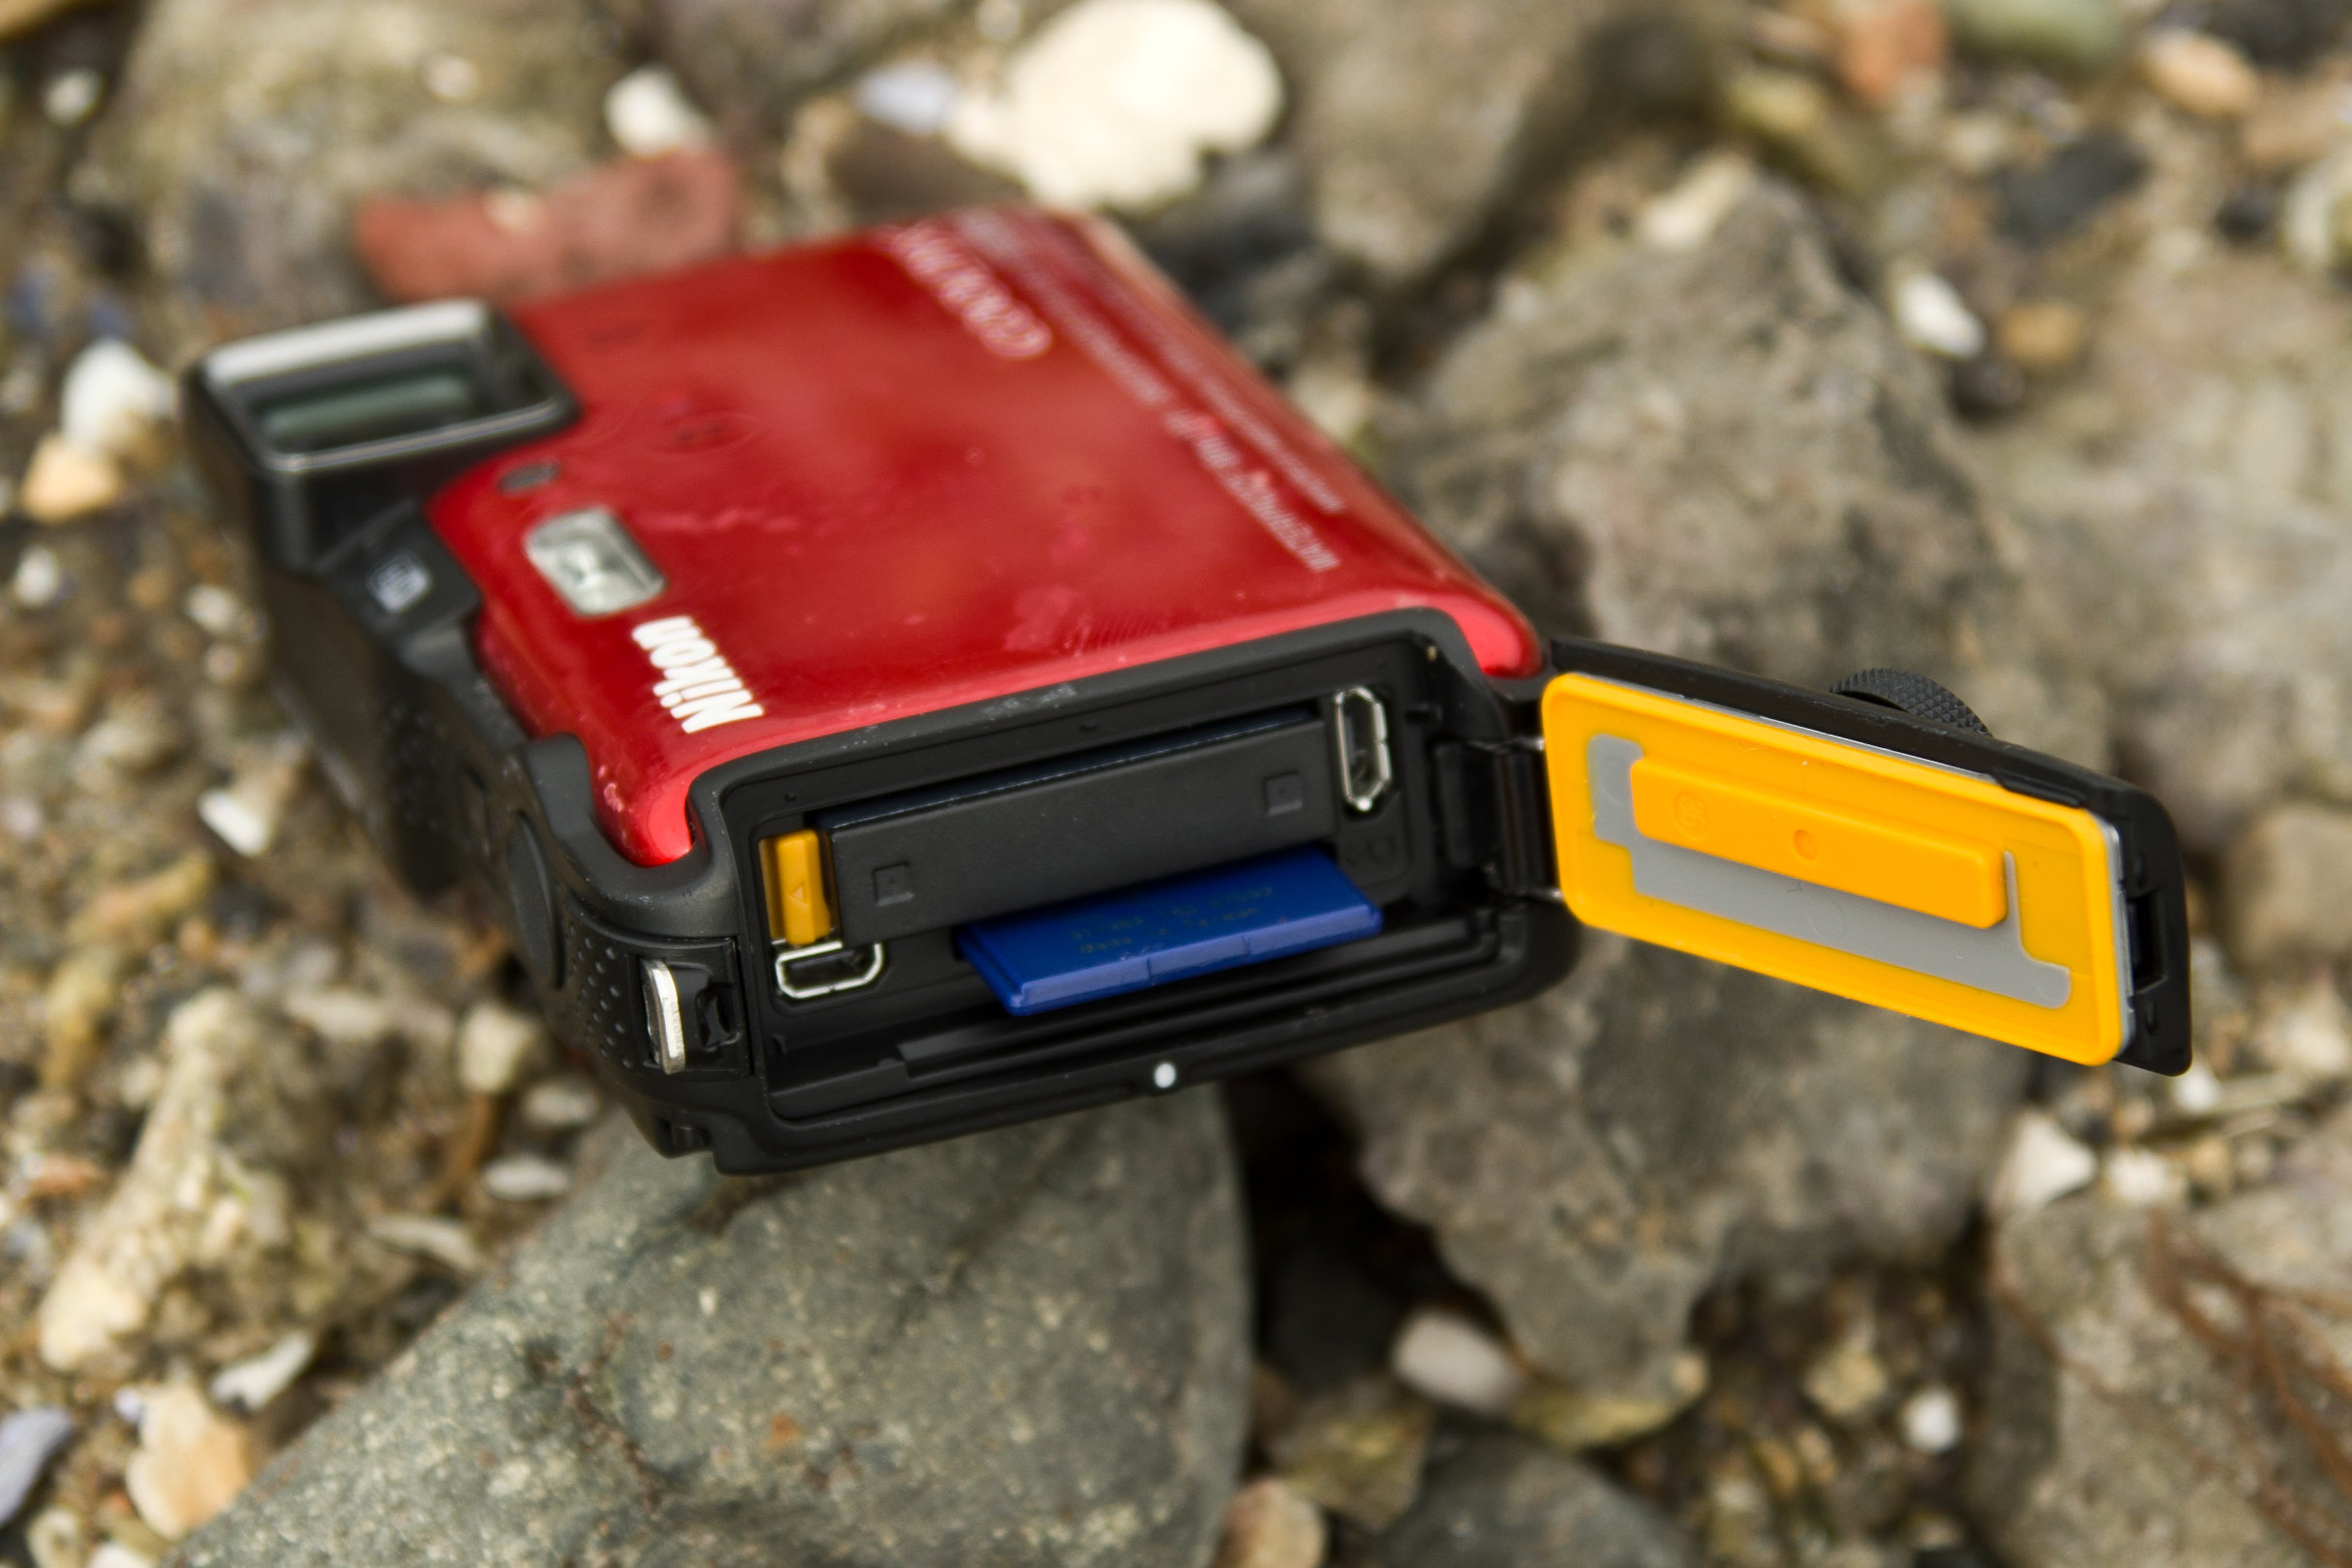 A shot of the Nikon Coolpix AW120's battery in the wild.